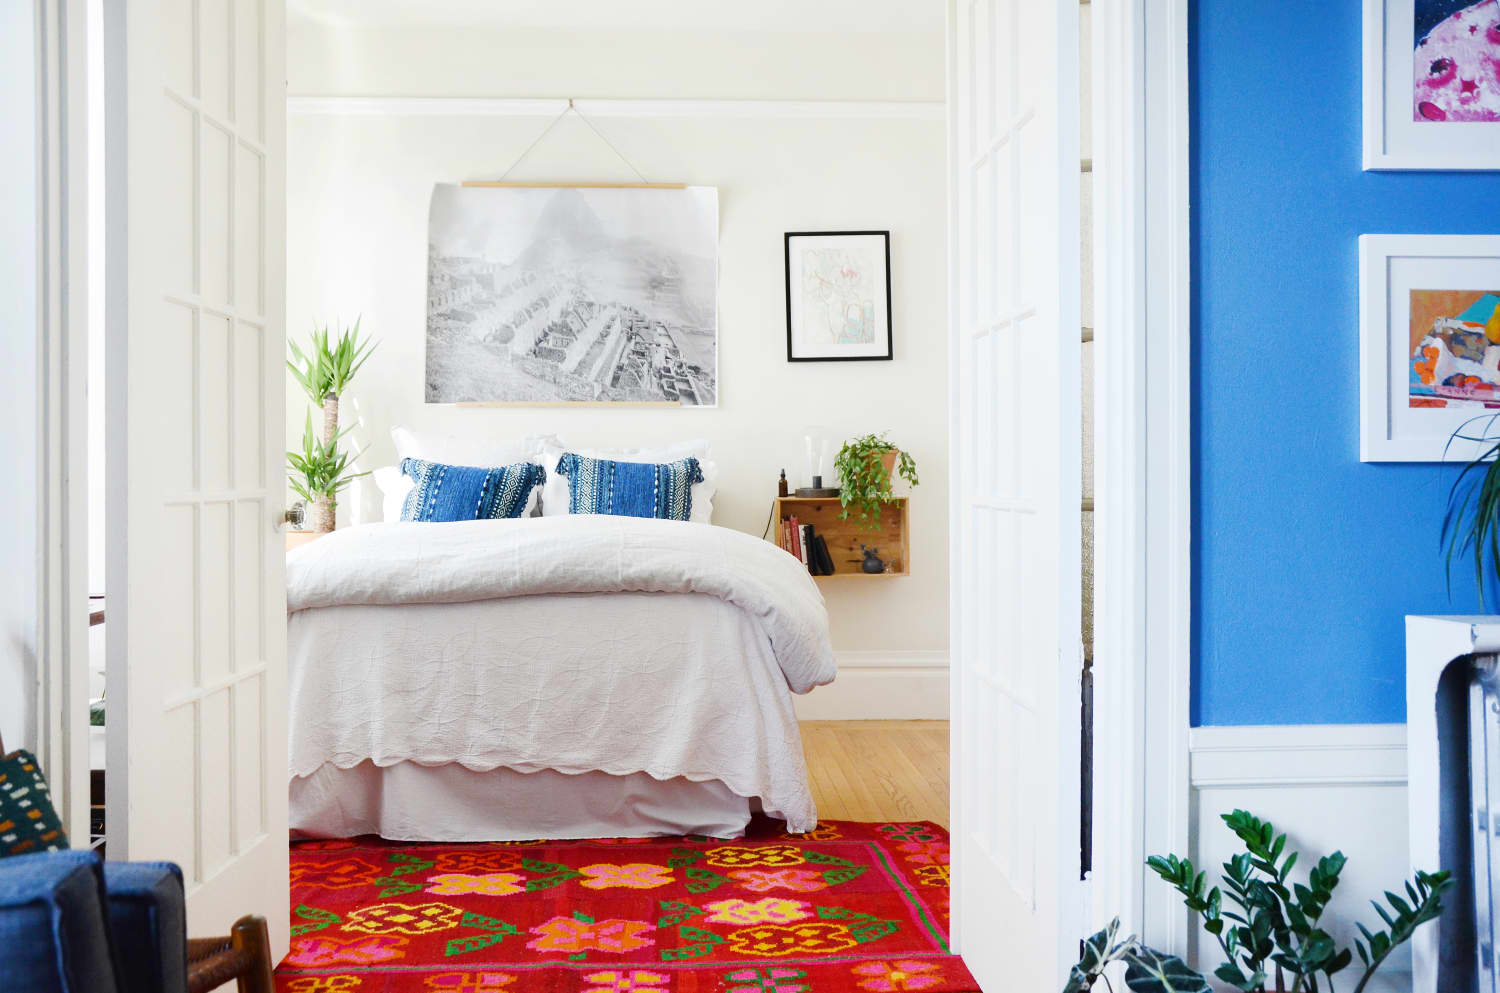 How to Arrange a Small Bedroom - Small Bedroom Layout | Apartment ...